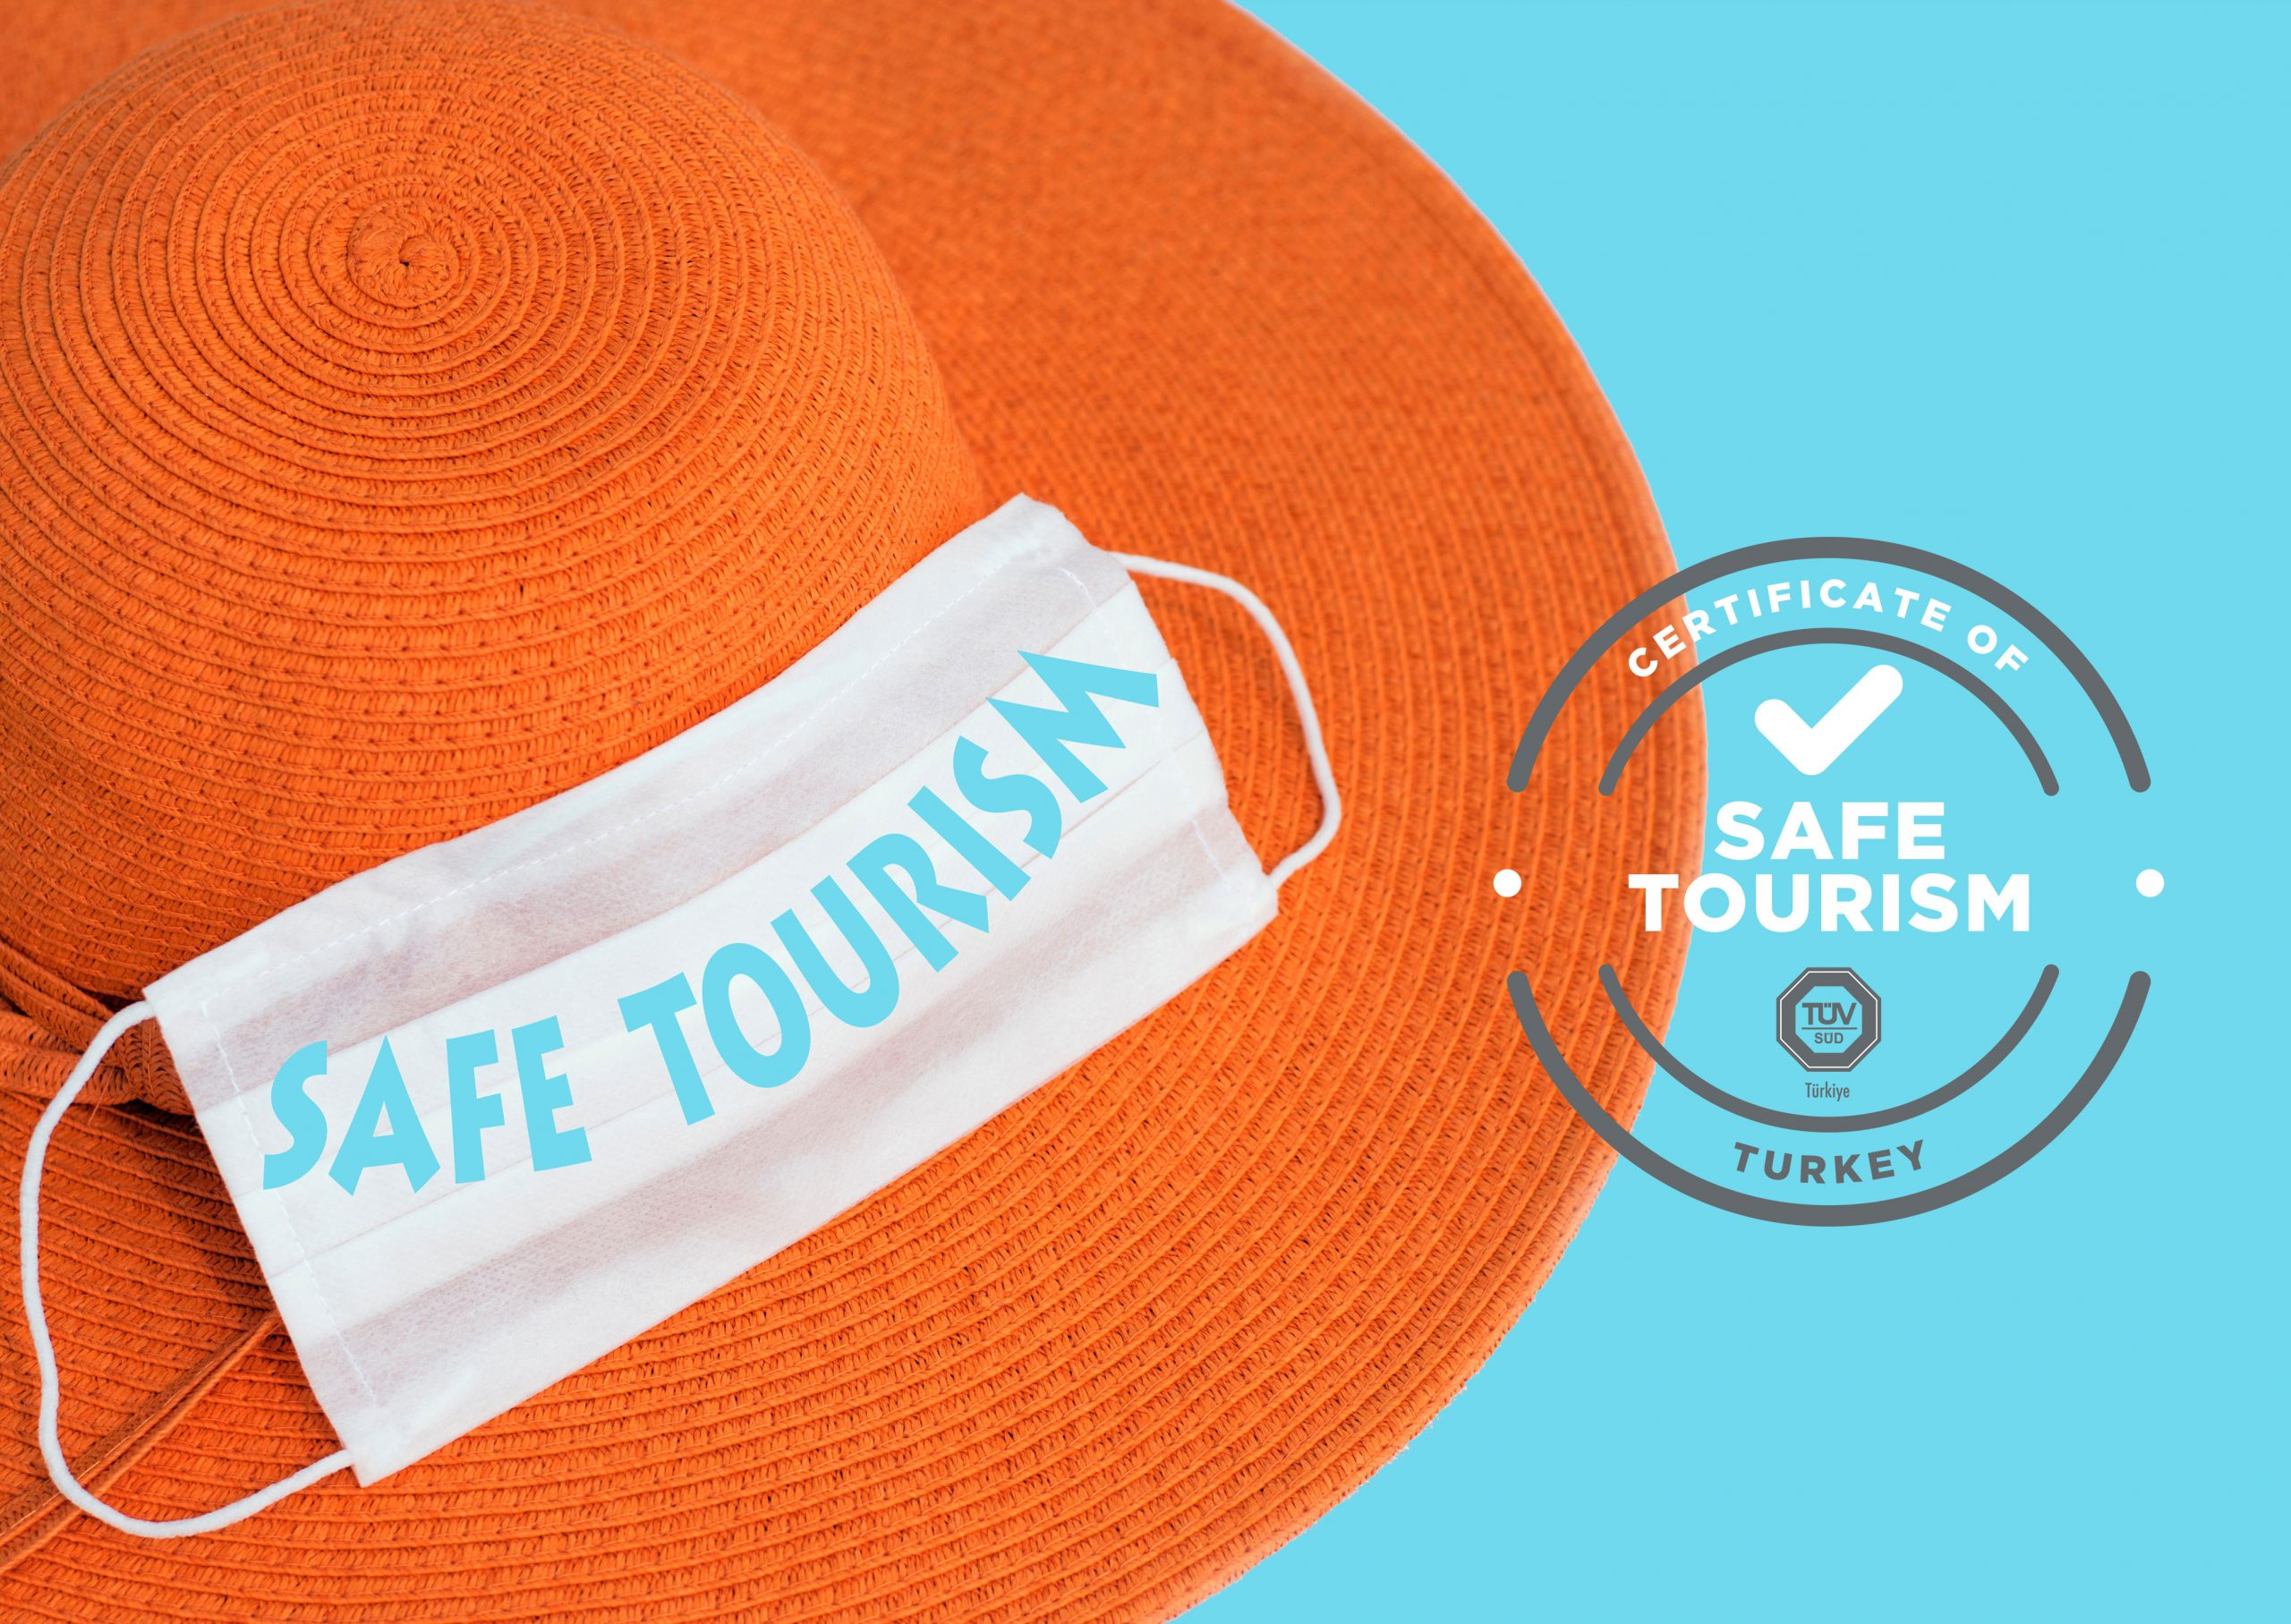 Hotels with Safe Tourism Certificate